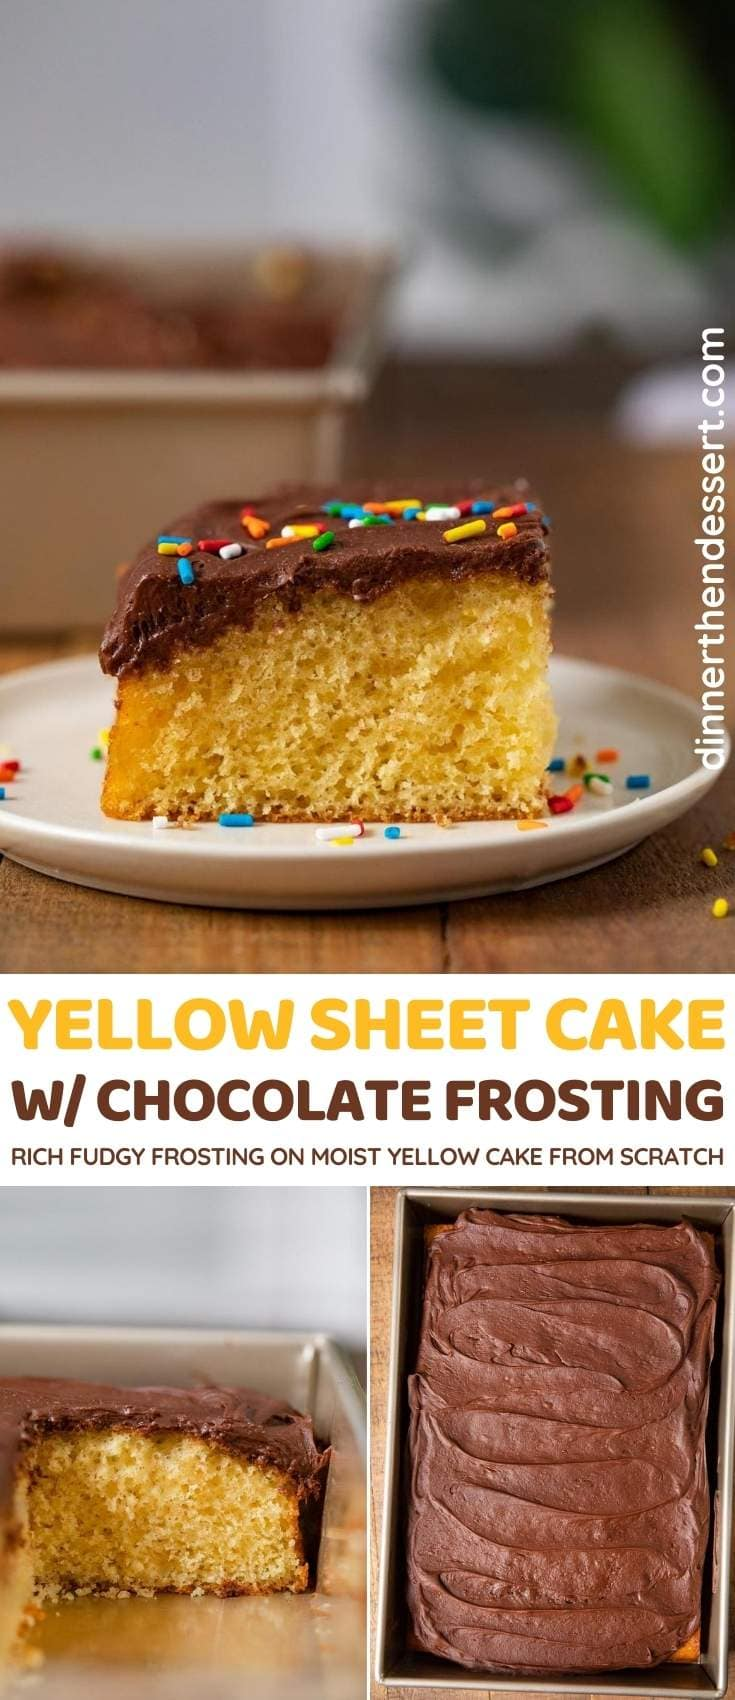 Yellow Sheet Cake with Chocolate Frosting collage